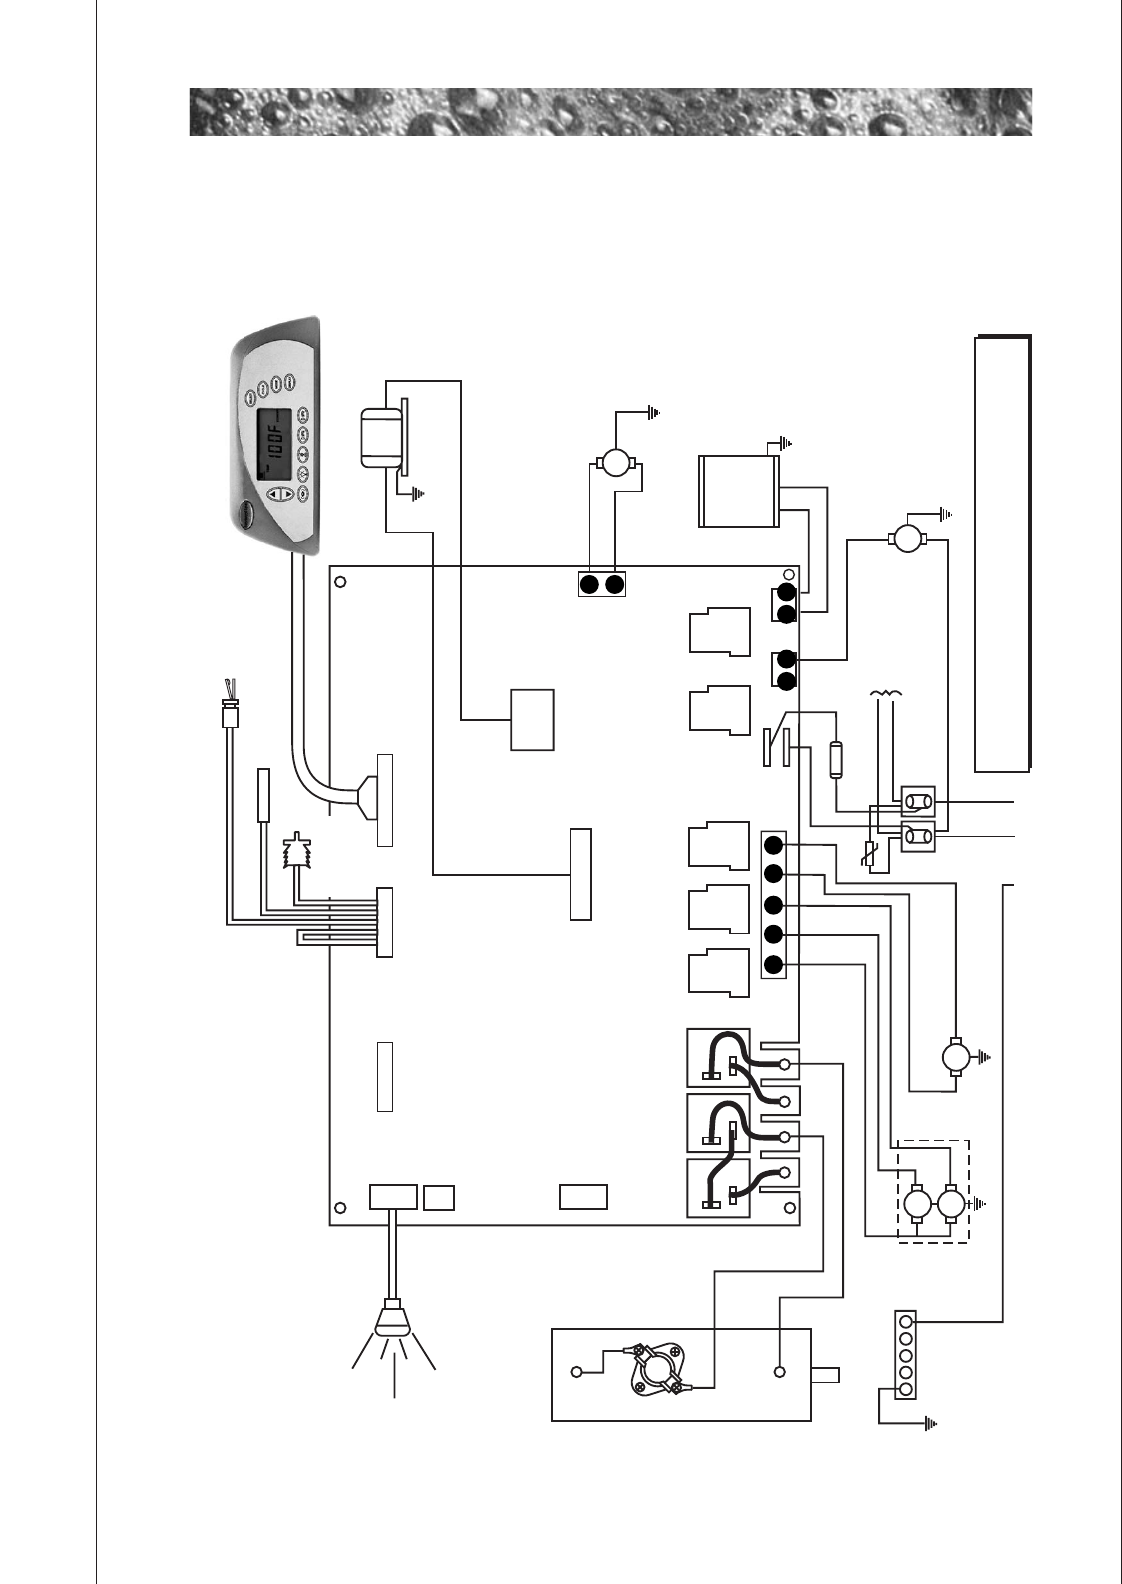 e2d38a6b b59d 4a5b 9ede 262e0c5f093e bg25 sundance spa wiring diagram spa pump wiring diagram \u2022 wiring jacuzzi hot tub wiring diagram at crackthecode.co